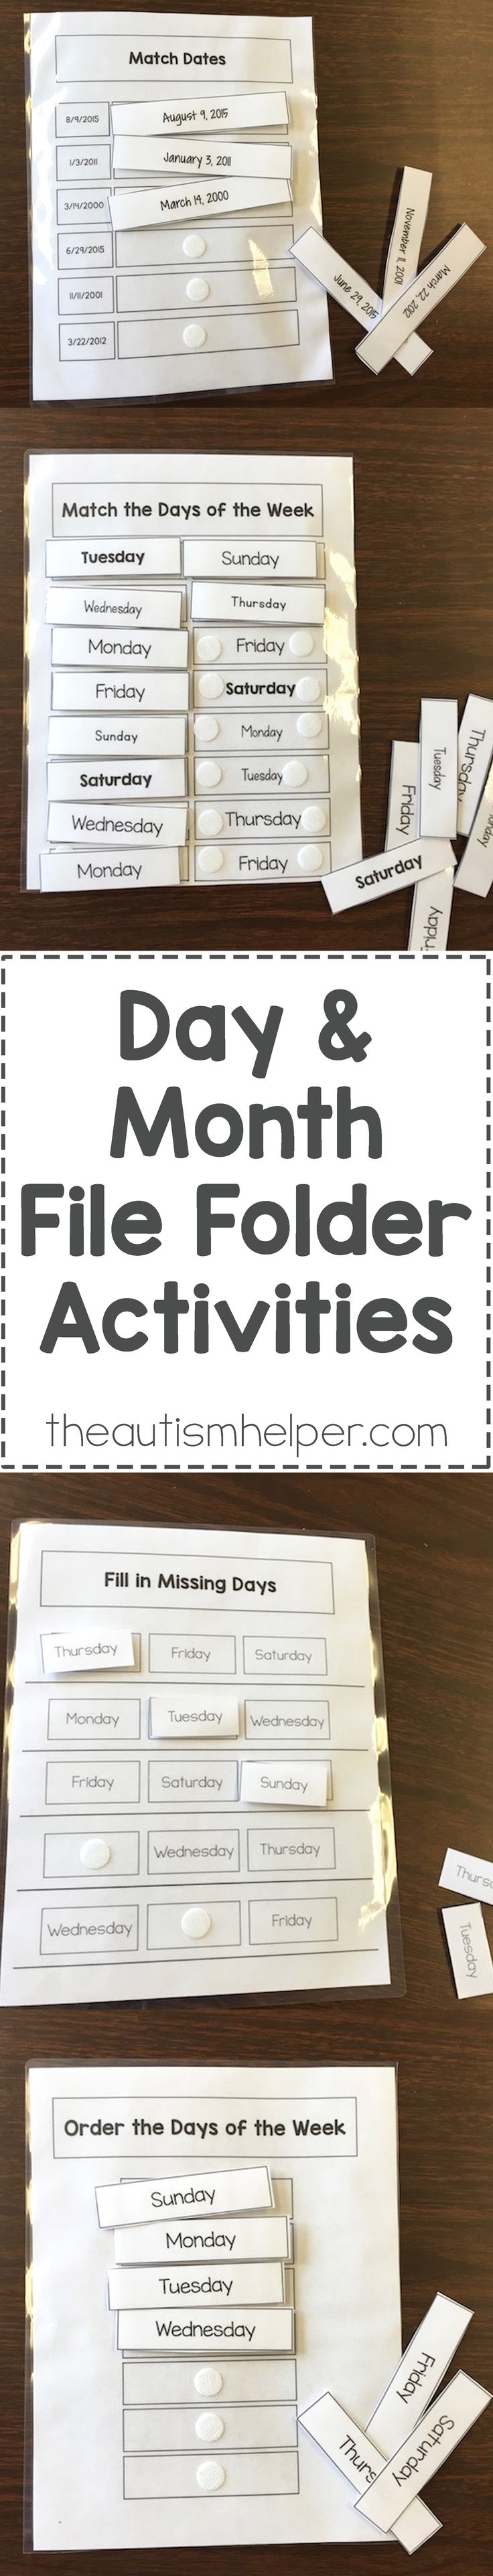 Let's explore learning & mastering calendar vocabulary in my Day & Month File Folder Activities! From theautismhelper.com #theautismhelper